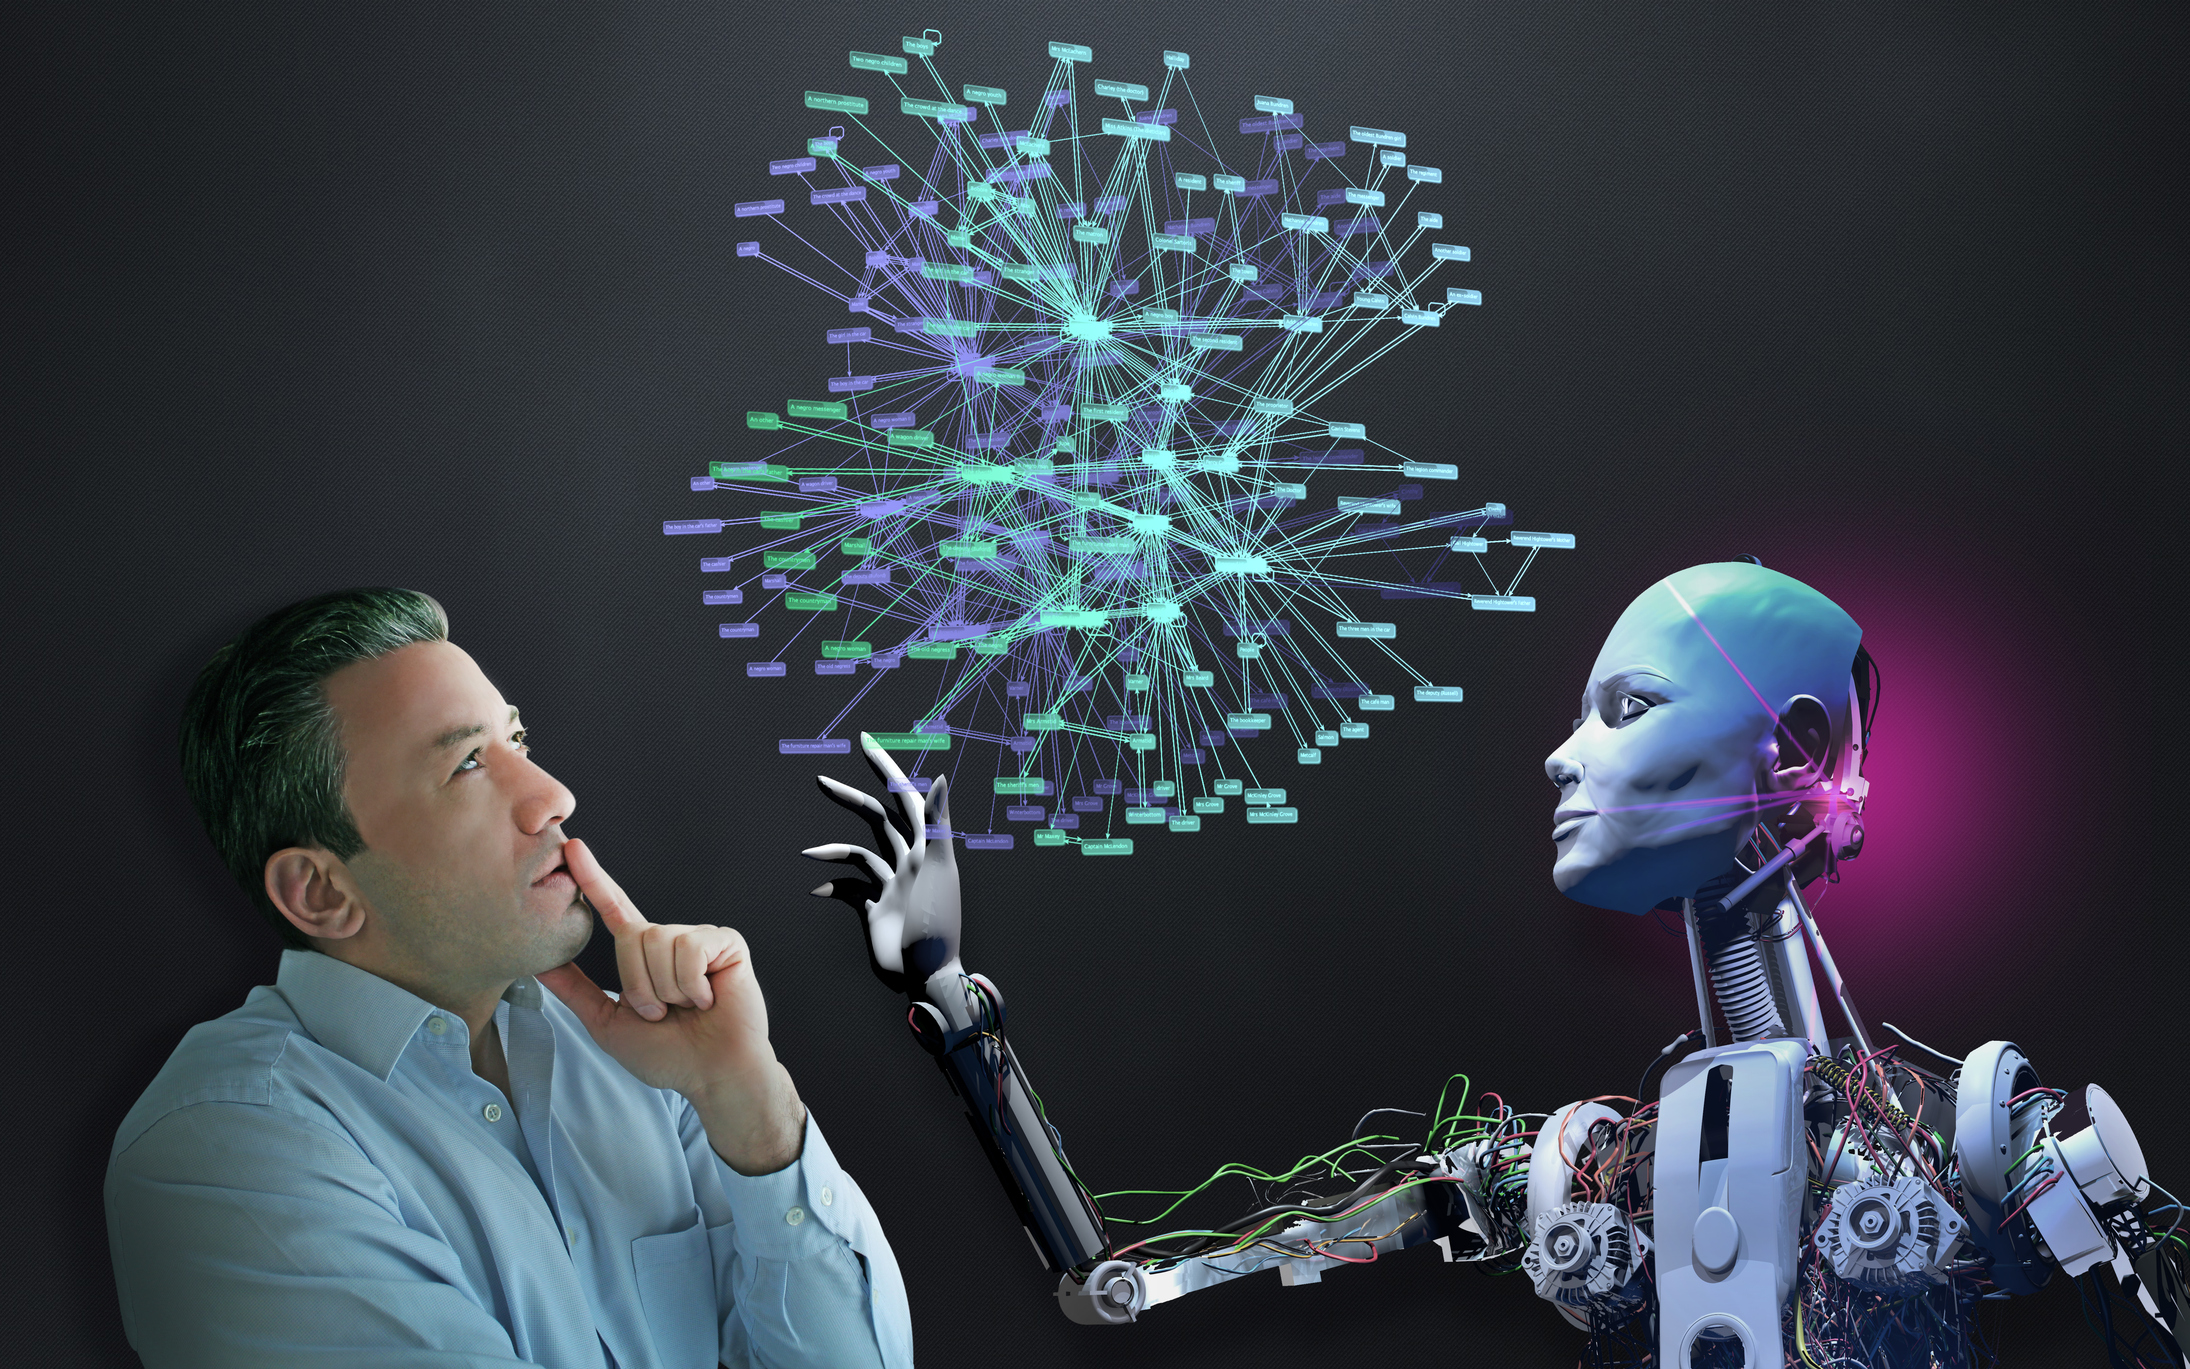 What you should know about AI